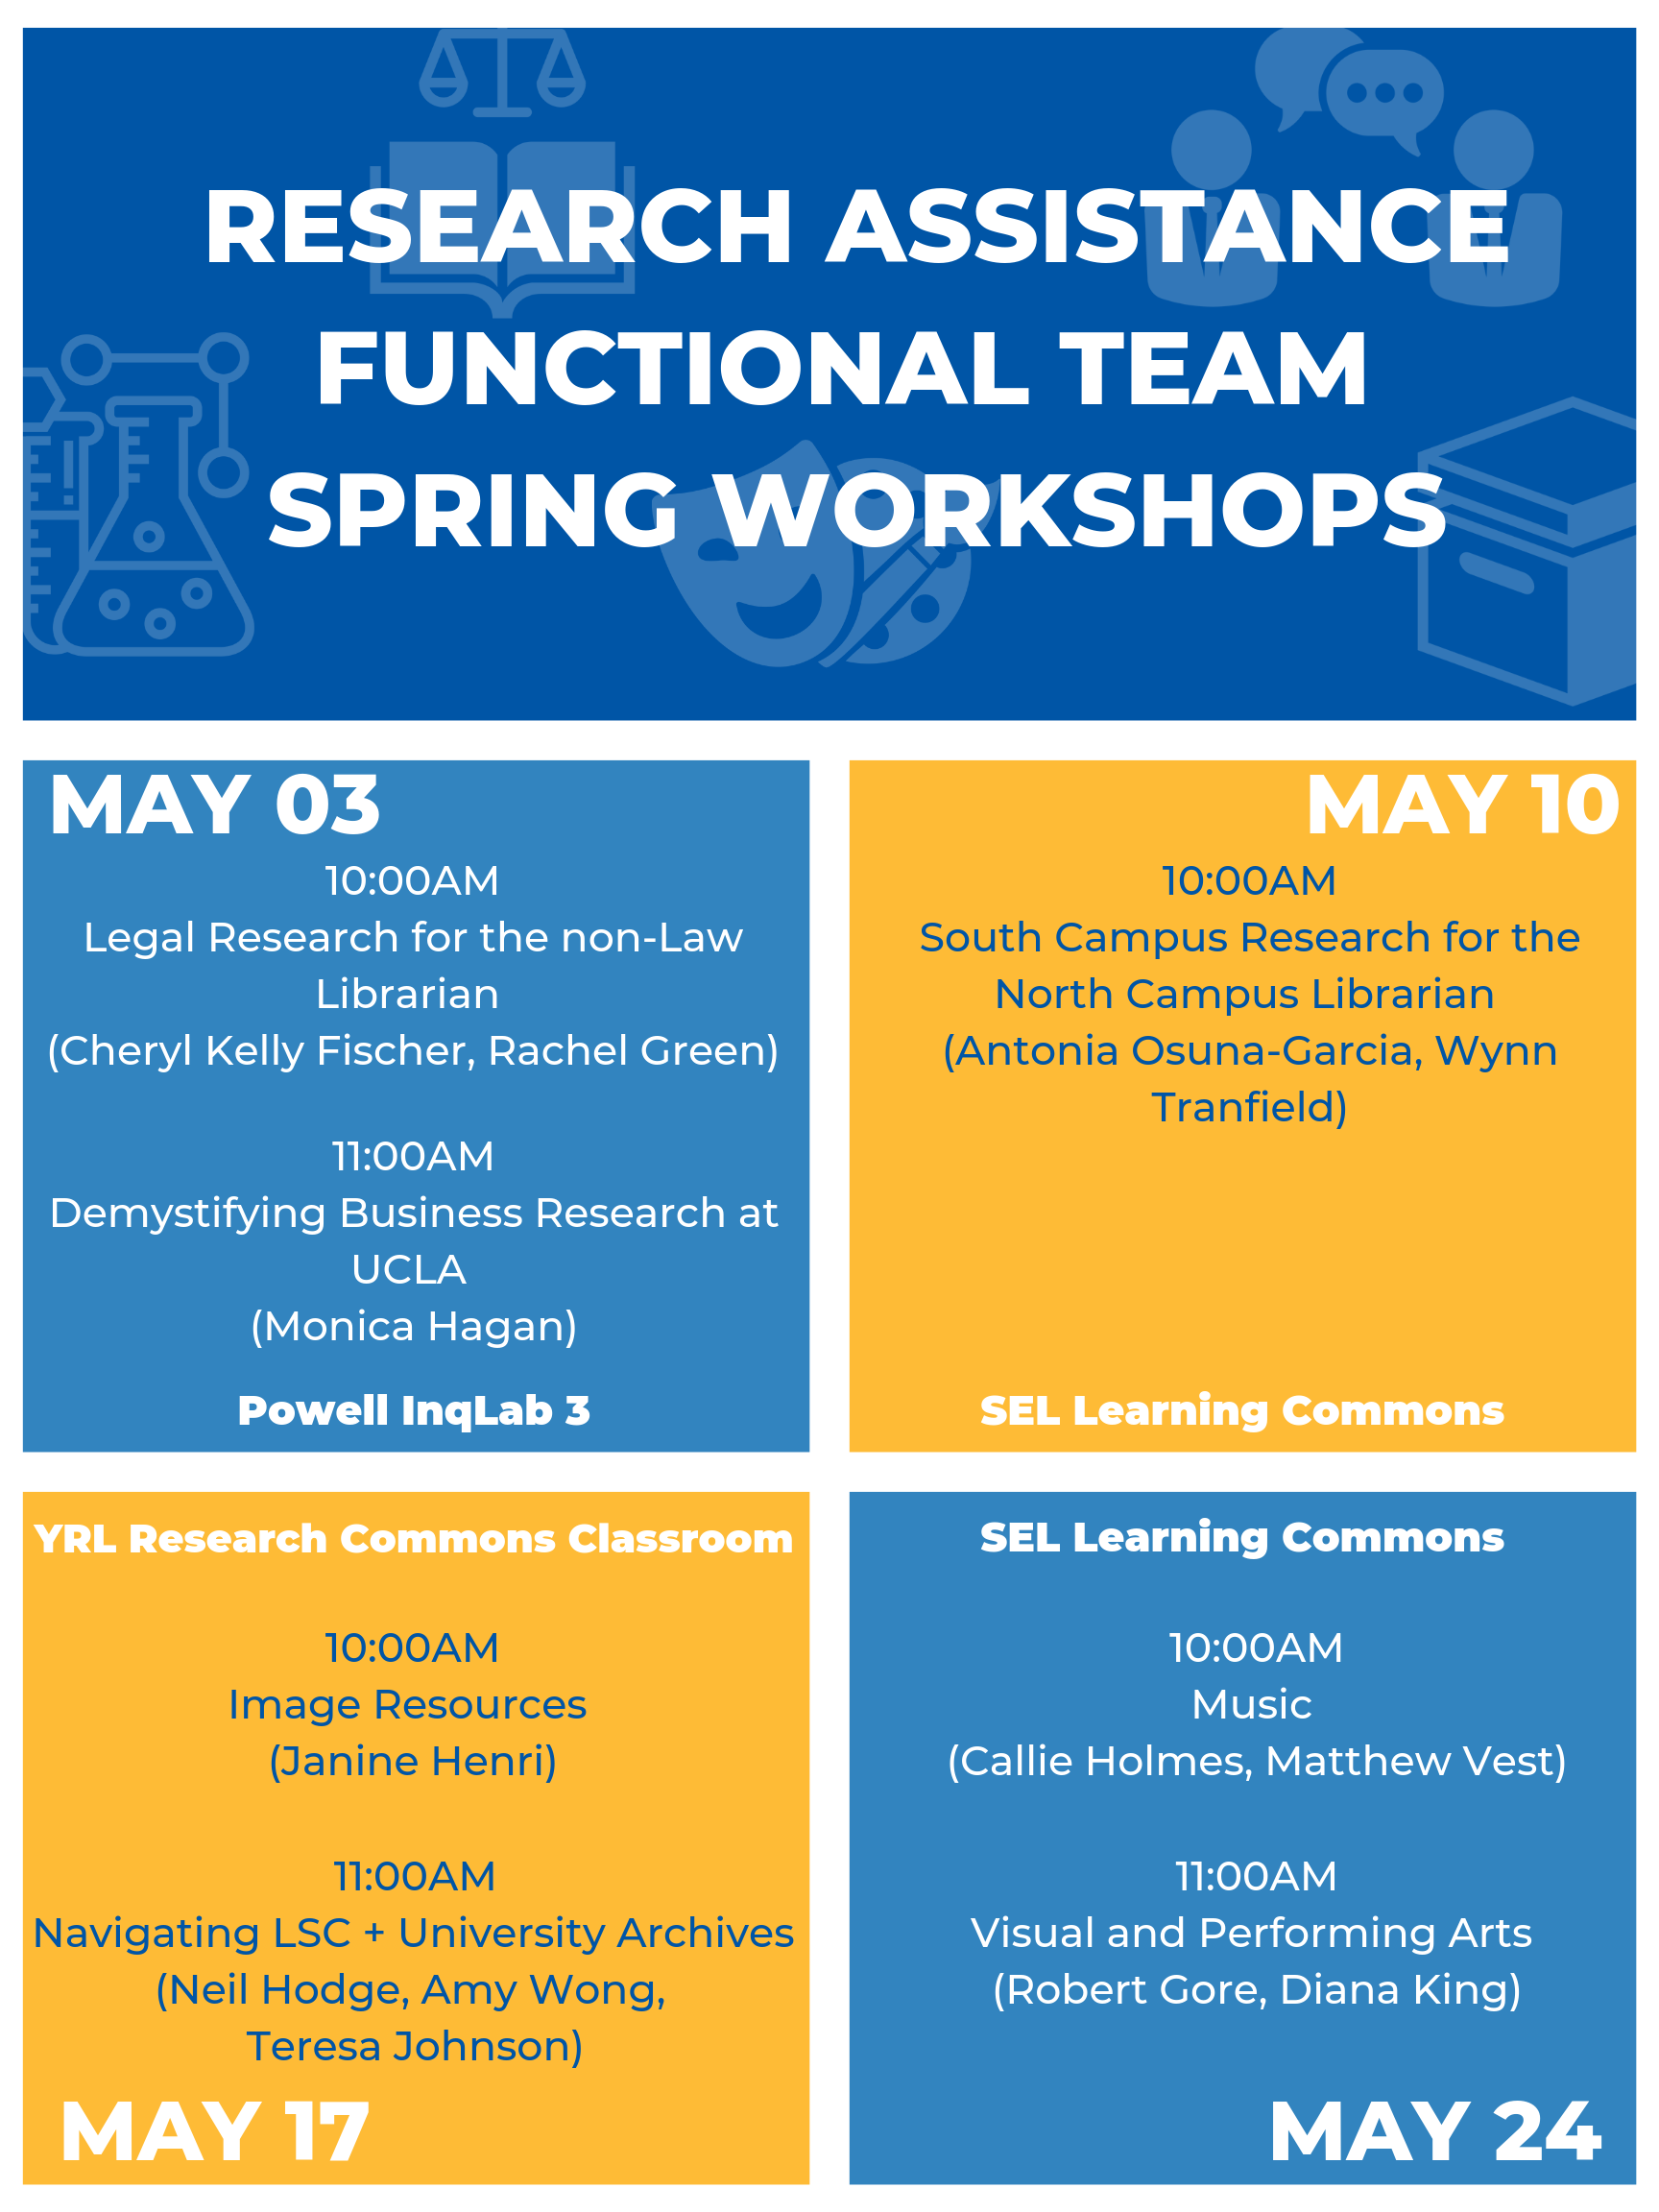 Upcoming Research Assistance Workshops